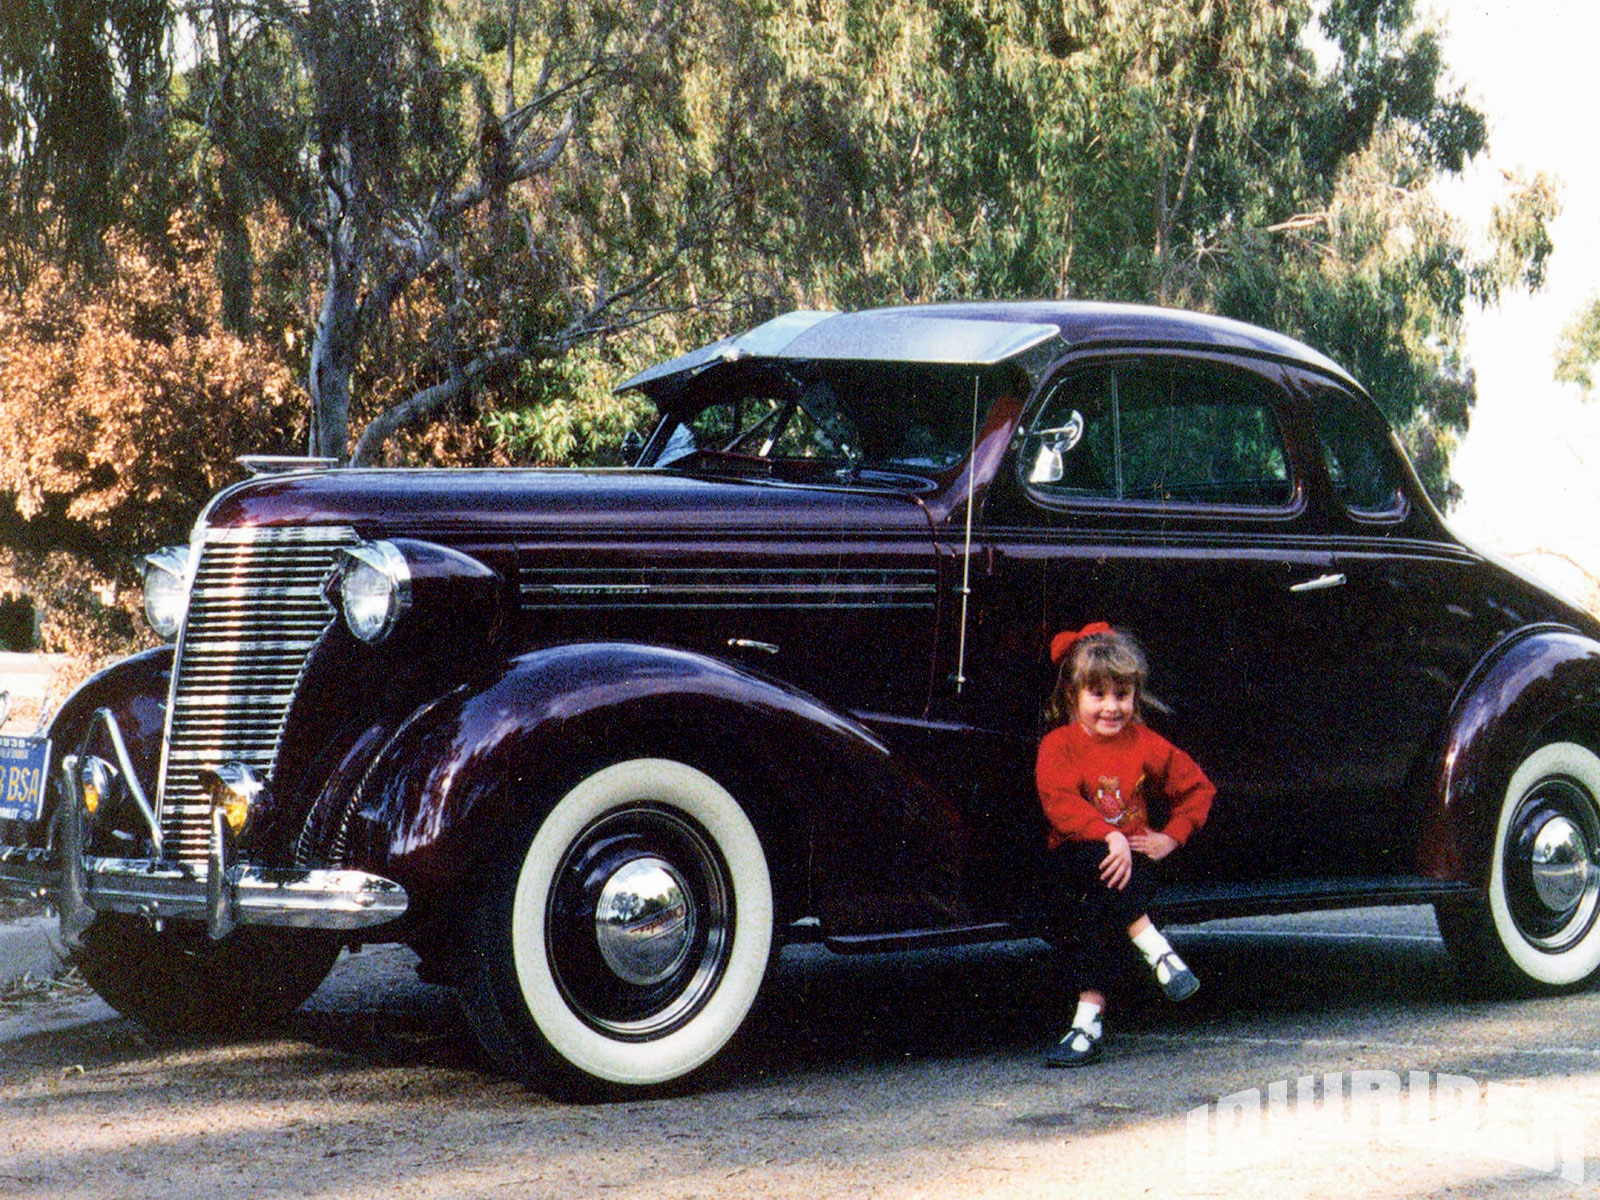 Lowrider Rims And Tires >> 1938 Chevrolet Master Deluxe Coupe - Lowrider Magazine